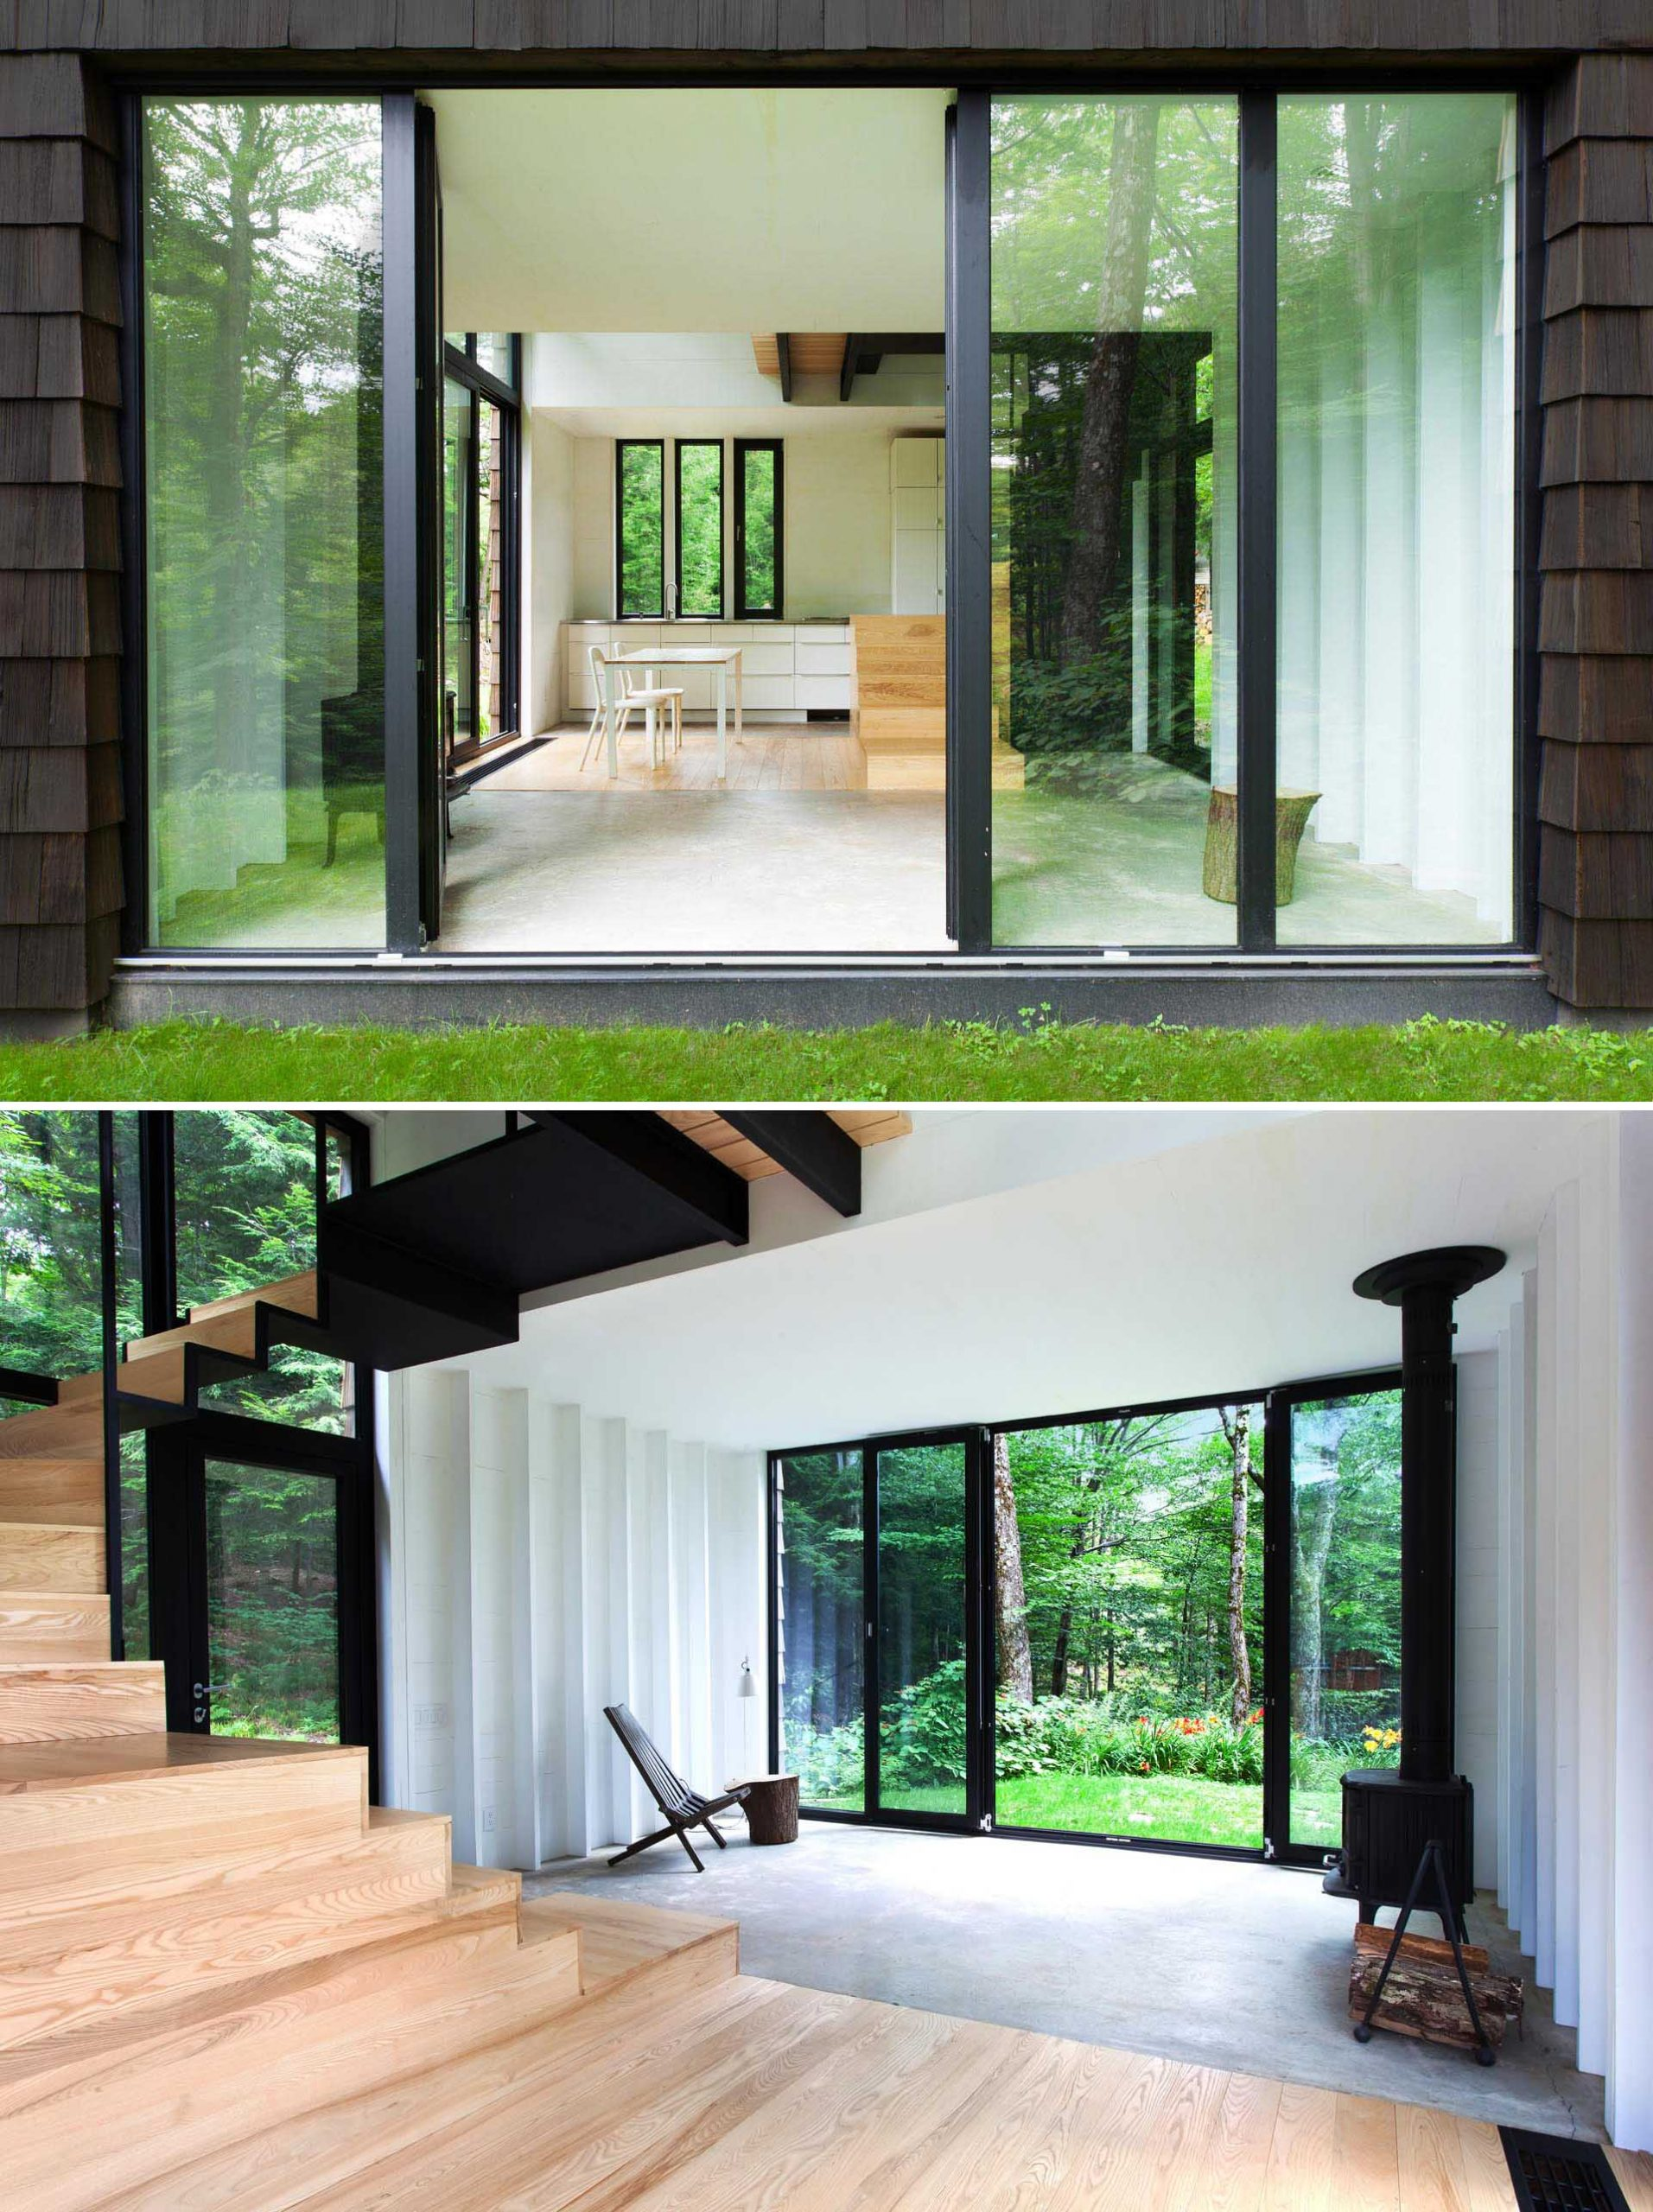 A small cottage with a minimalist design, concrete floors, and wood accents.